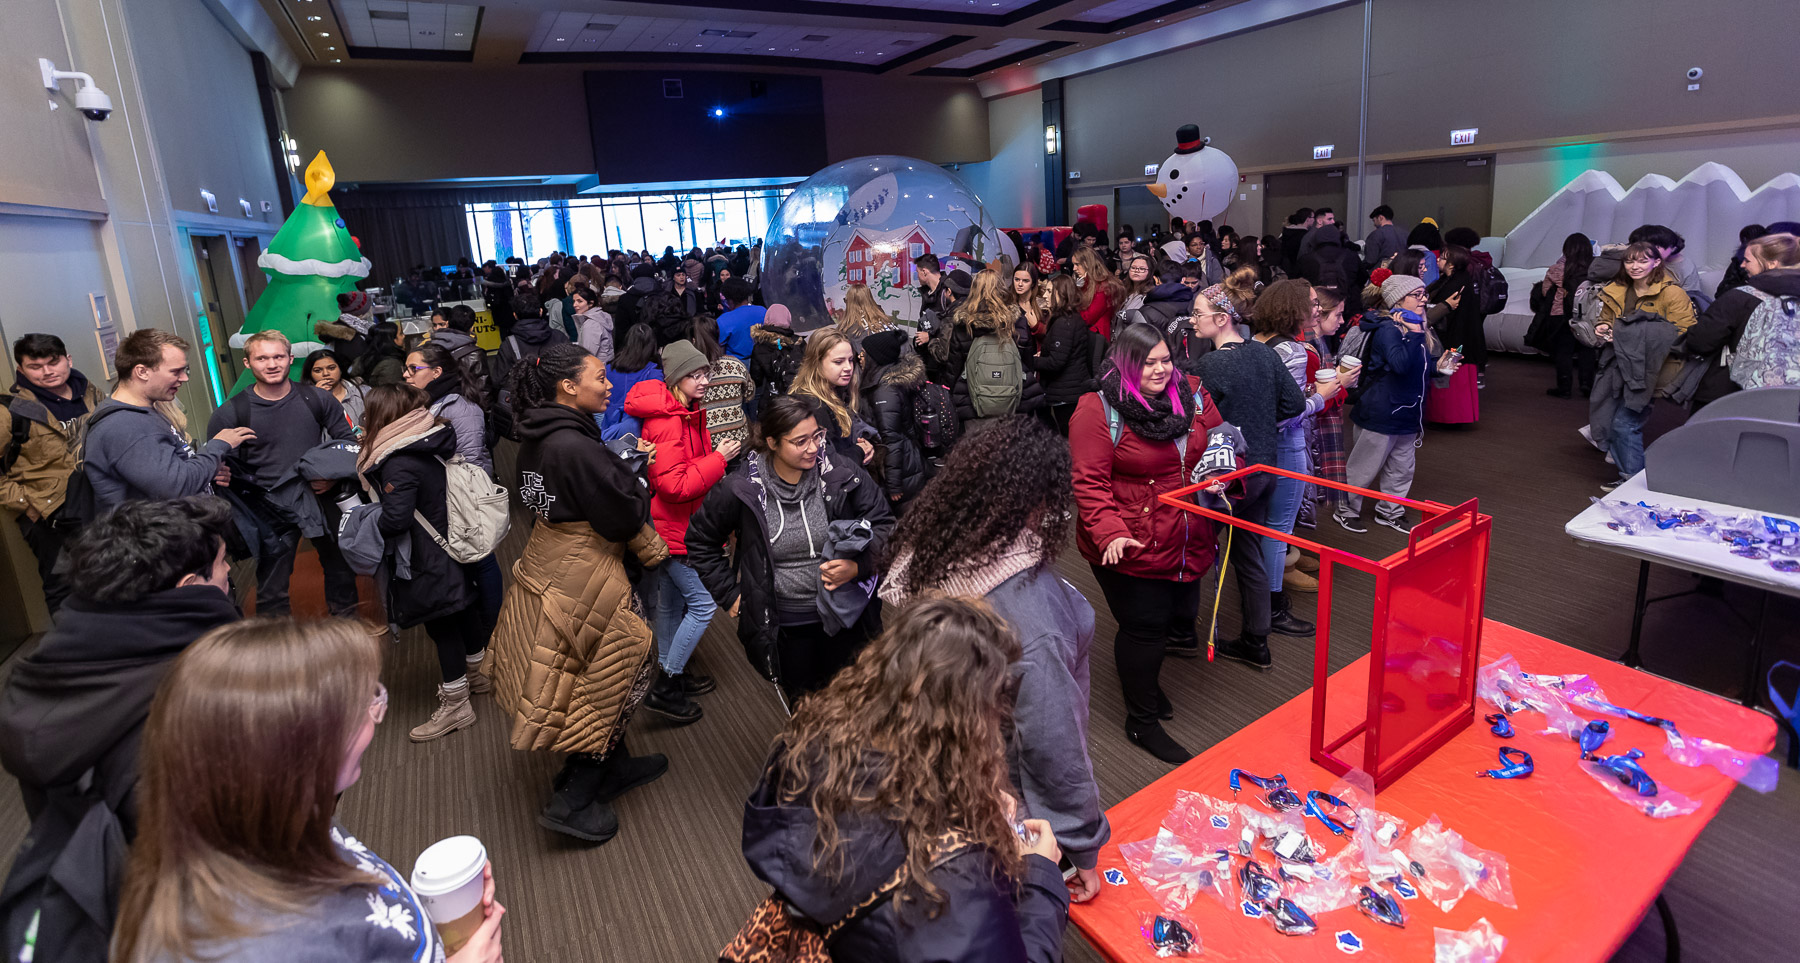 DePaul students take part in the many available crafts, games and activities during the second-annual Ugly Sweater Party in the Lincoln Park Student Center. (DePaul University/Jeff Carrion)